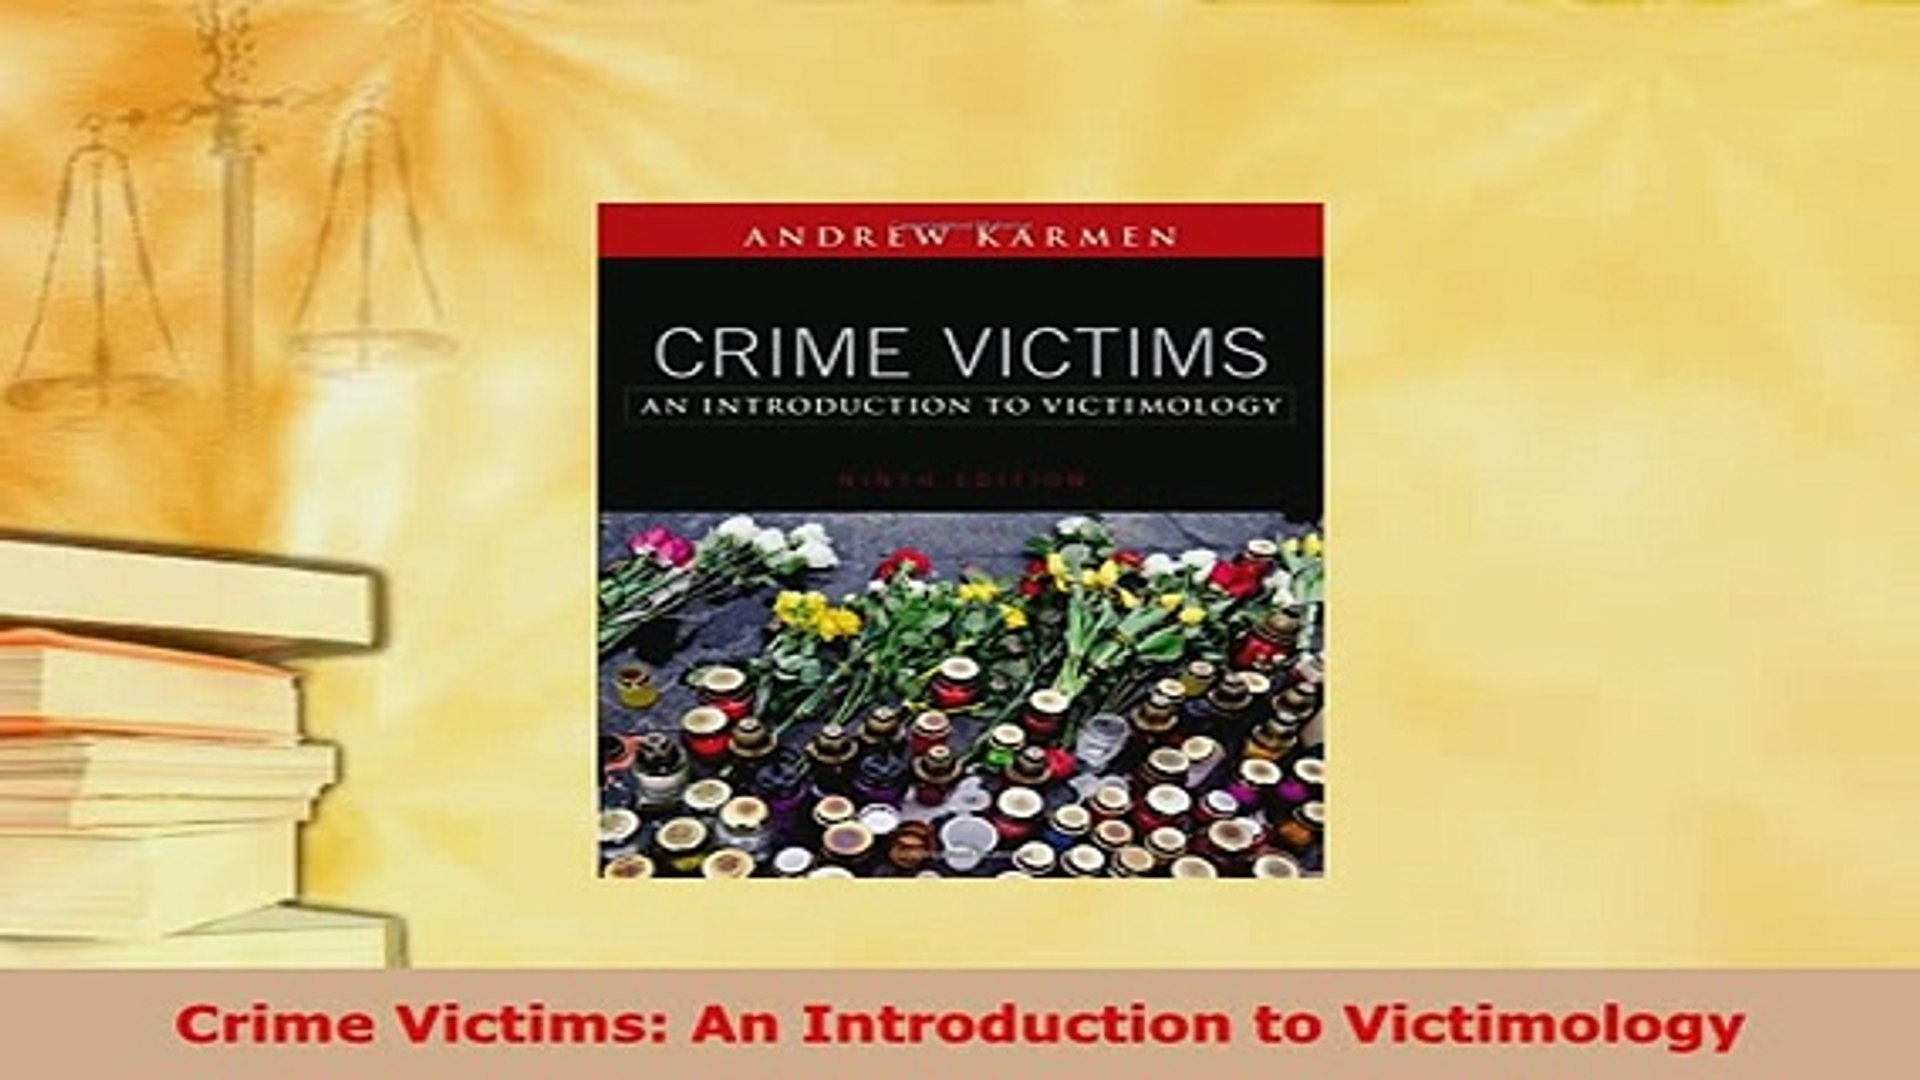 crime victims an introduction to victimology 10th edition pdf